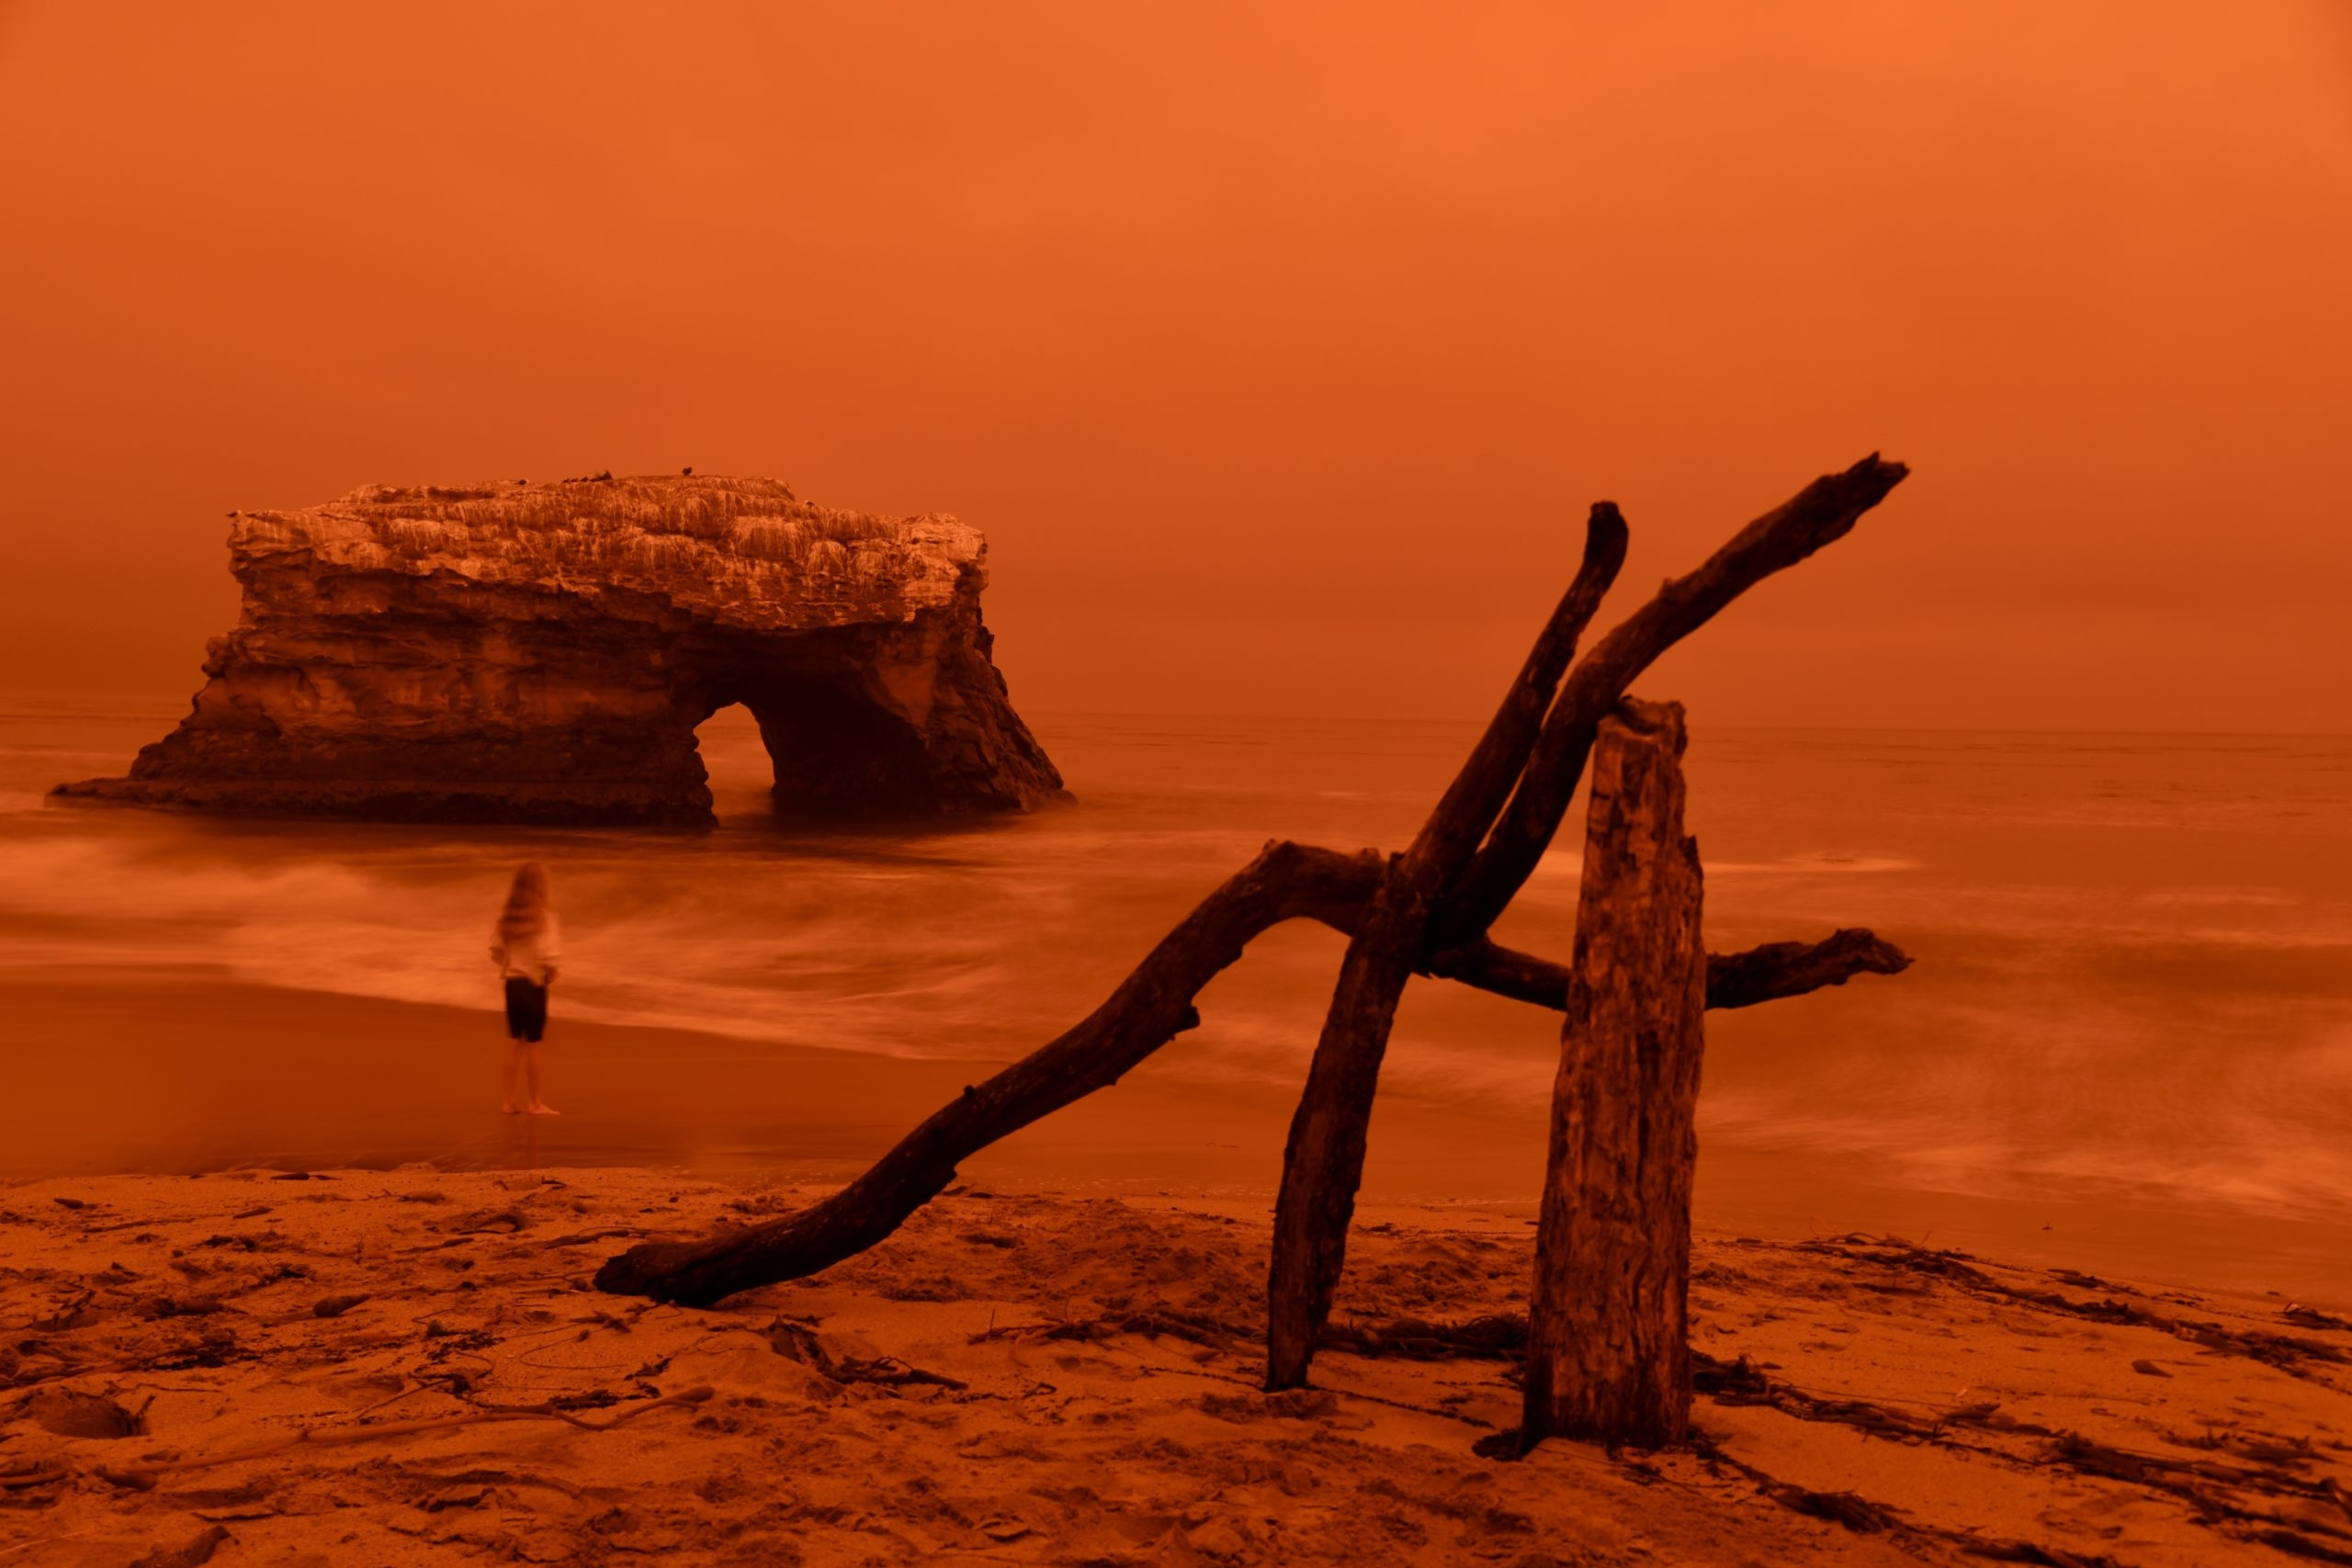 A small sculpture of driftwood stuck in the sand is in the forefront, with the Natural Bridges arch in the background and person approaching the water, all cloaked in a bright red hue.